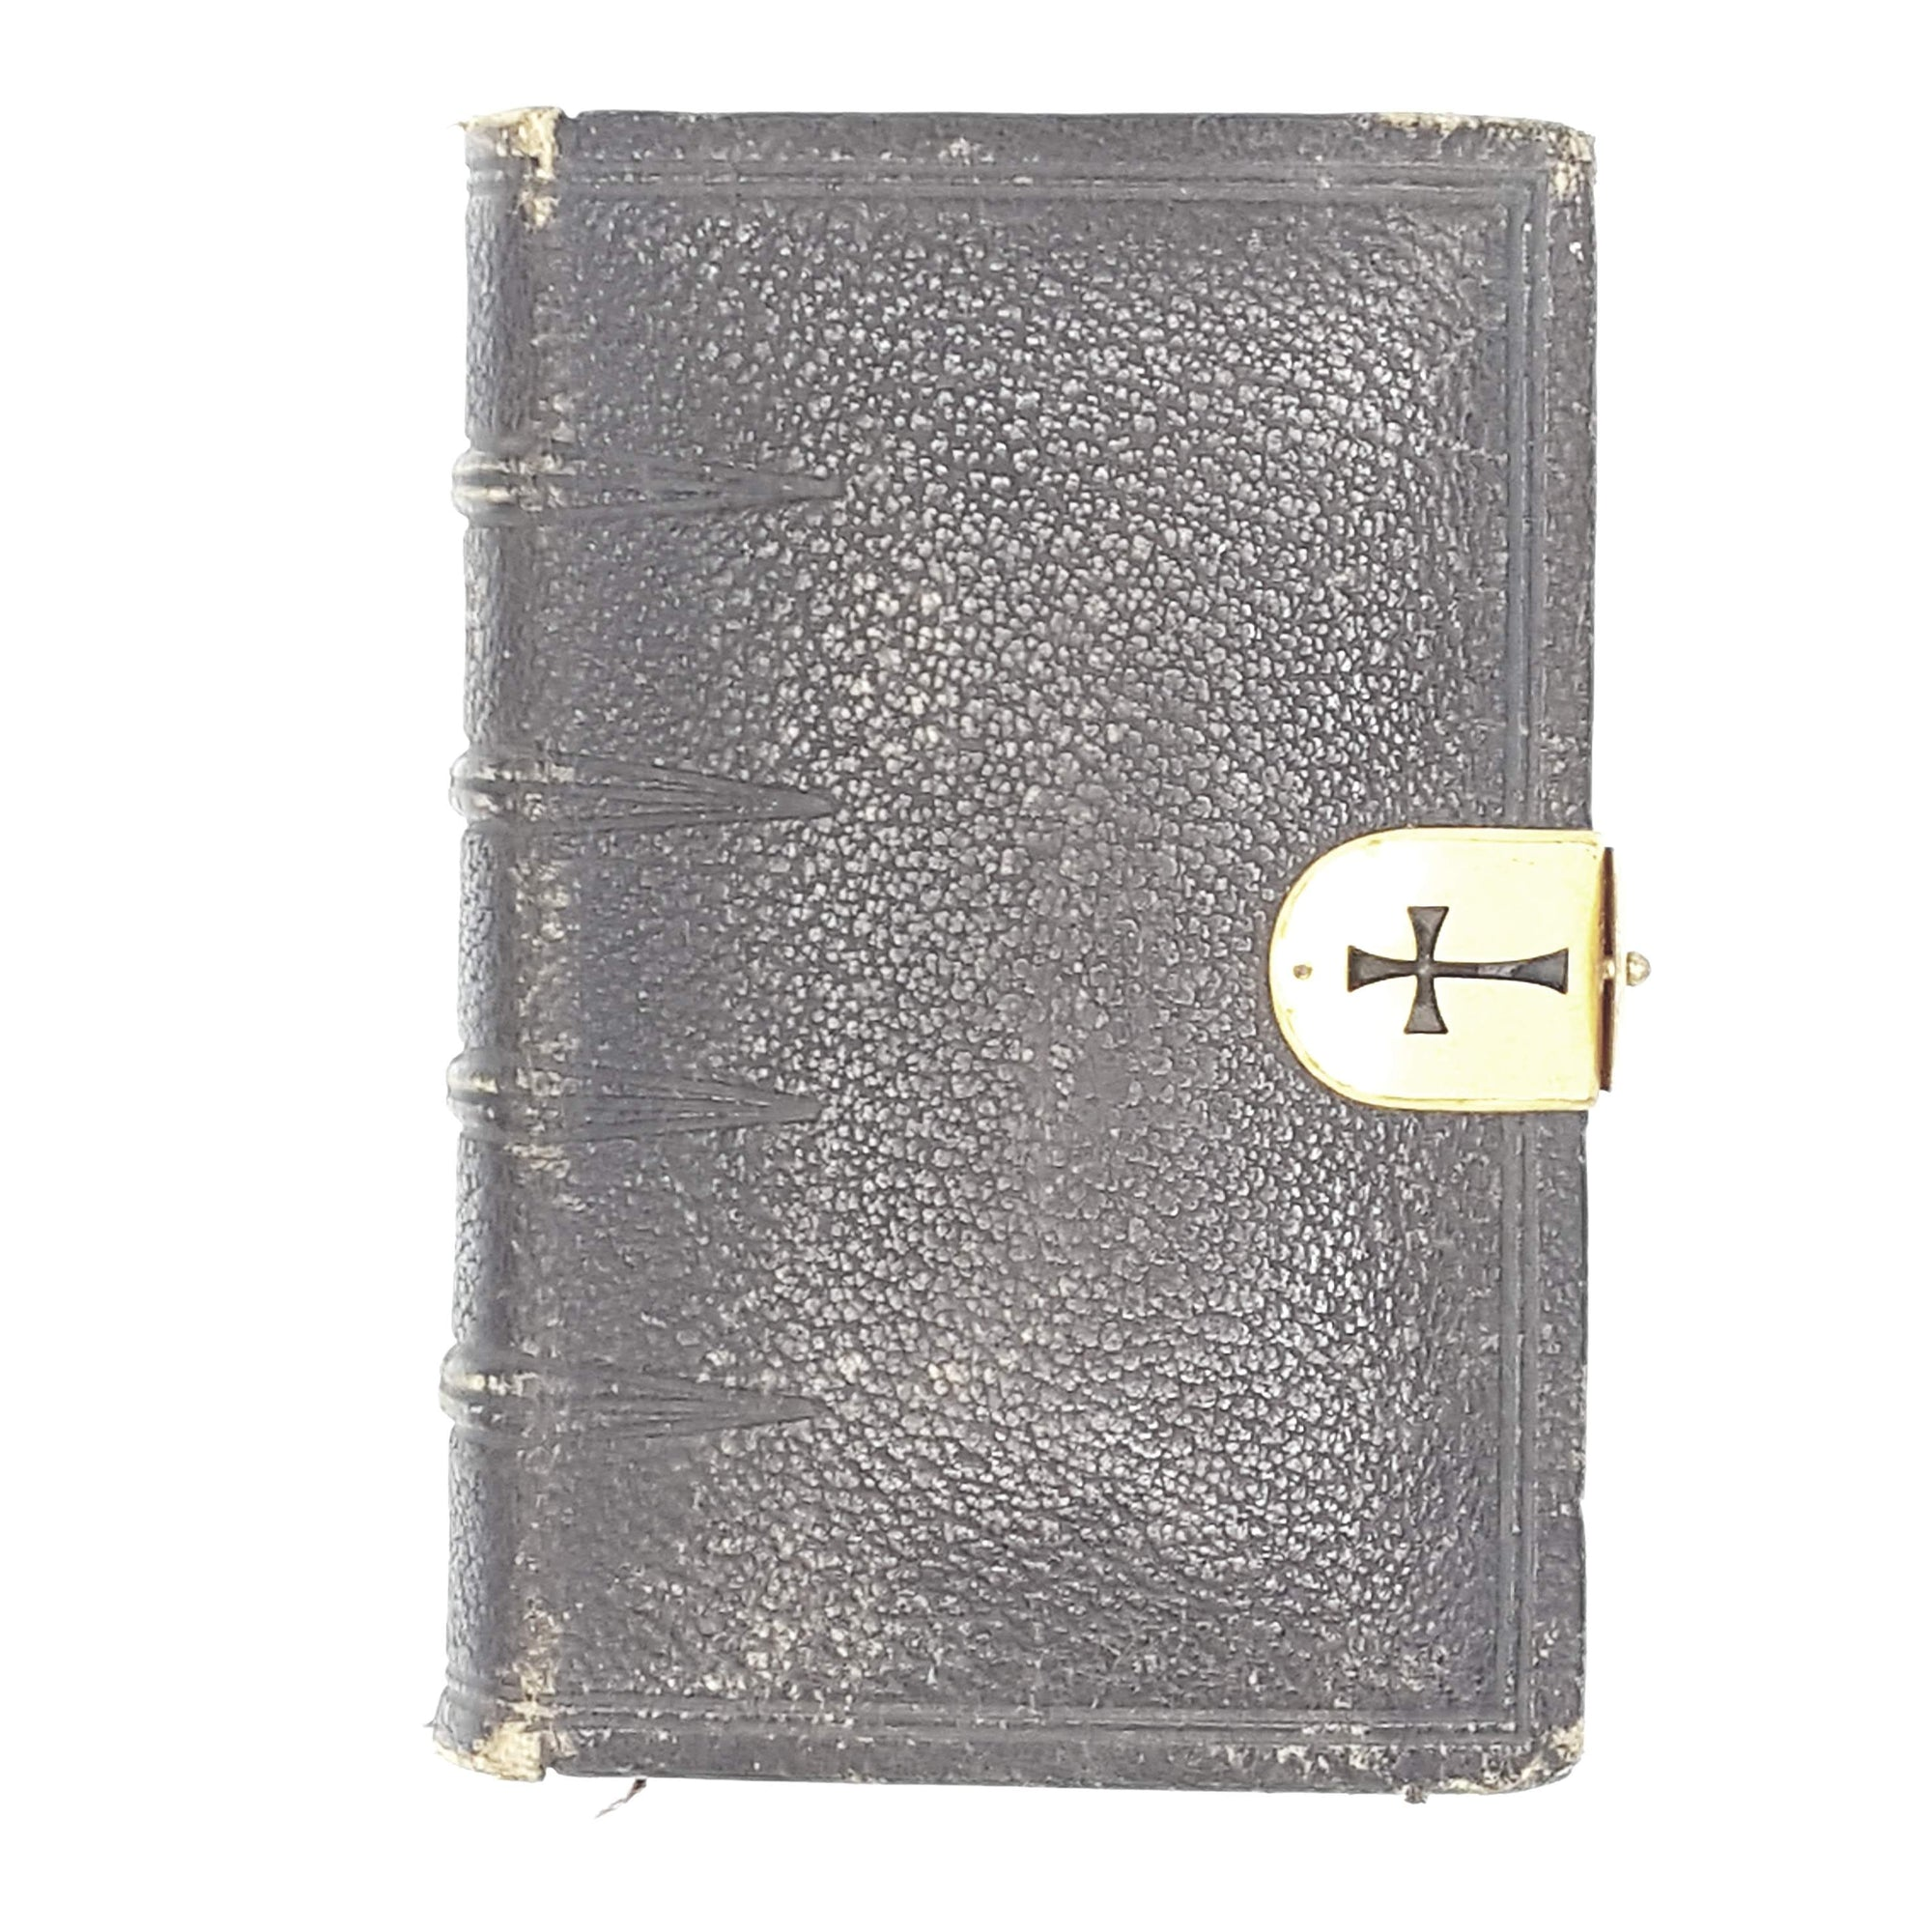 Book of Common Prayer with golden side-lock c1878